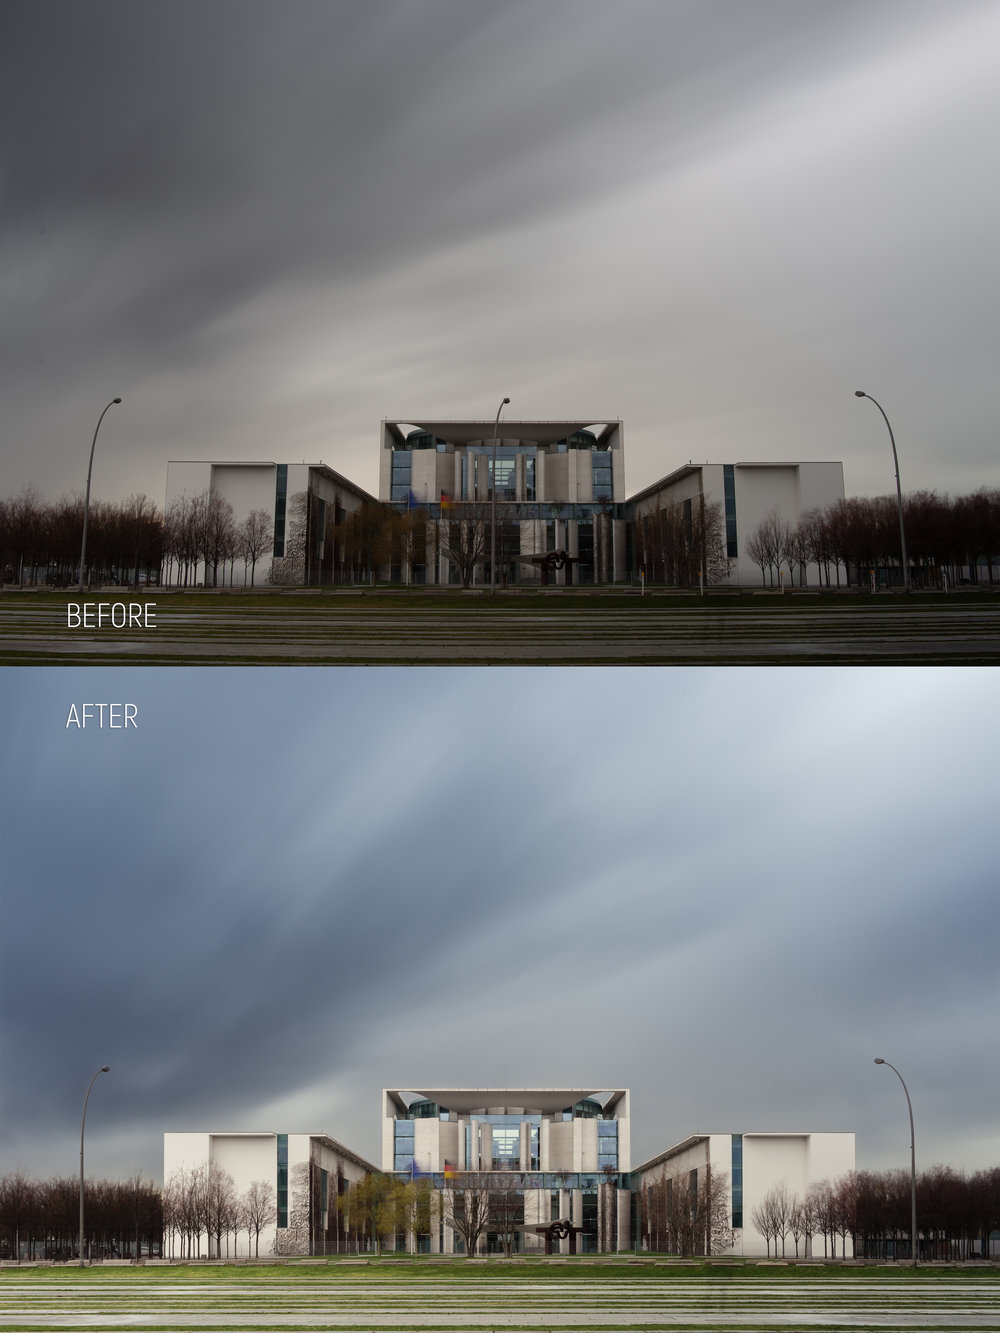 Perspective and lens correction. Removed light pole in the middle and smaller poles in front of the building. Replaced and color corrected the sky. Brightness and color corrected the building, color corrected the grass and pavement.